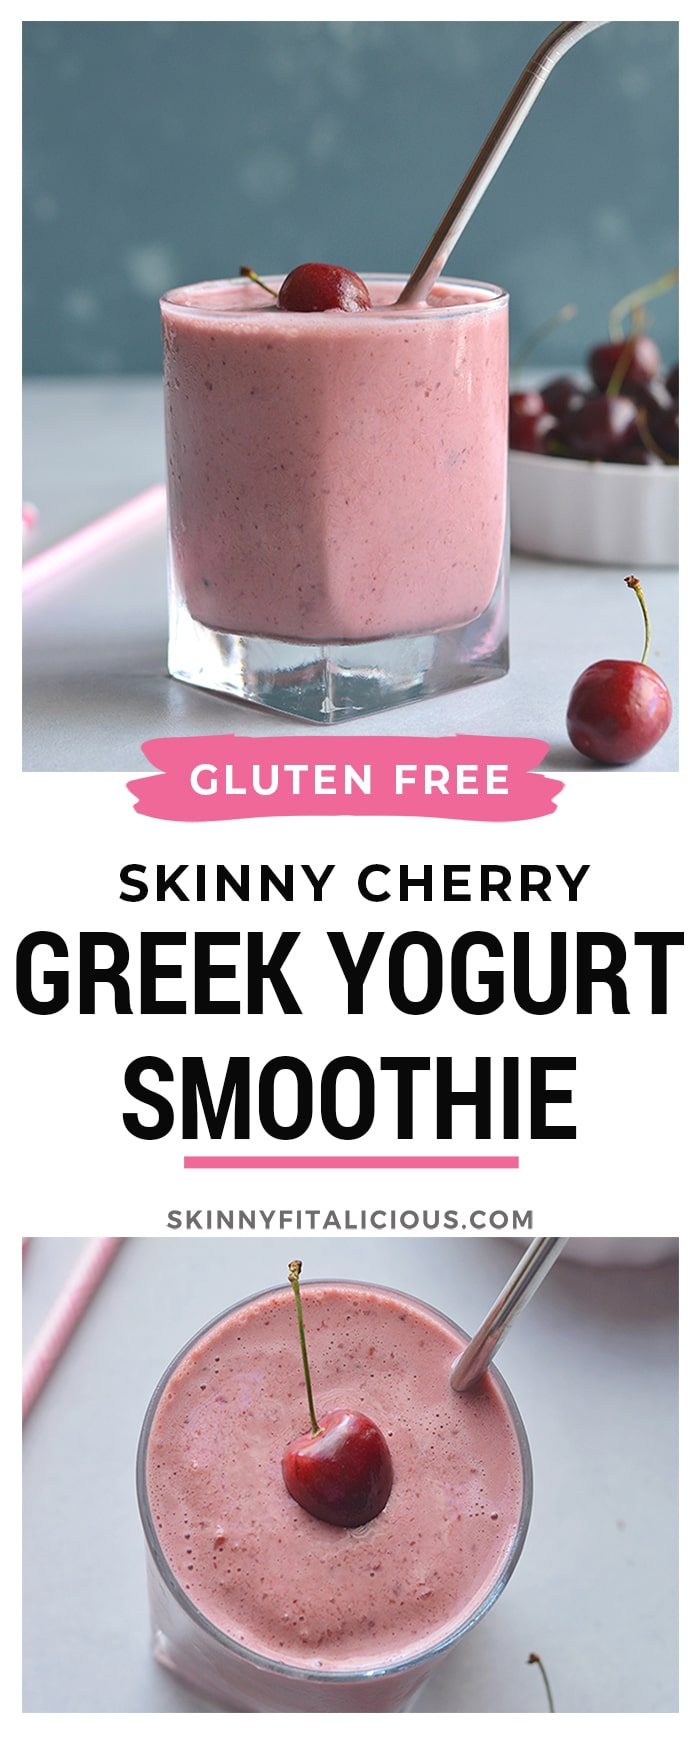 Skinny Greek Yogurt Cherry Smoothie! A thick, creamy, high protein smoothie made with Greek yogurt and sweetened with stevia. This lightened up smoothie is great for breakfast on the go or post workout recovery. Gluten Free + Low Calorie